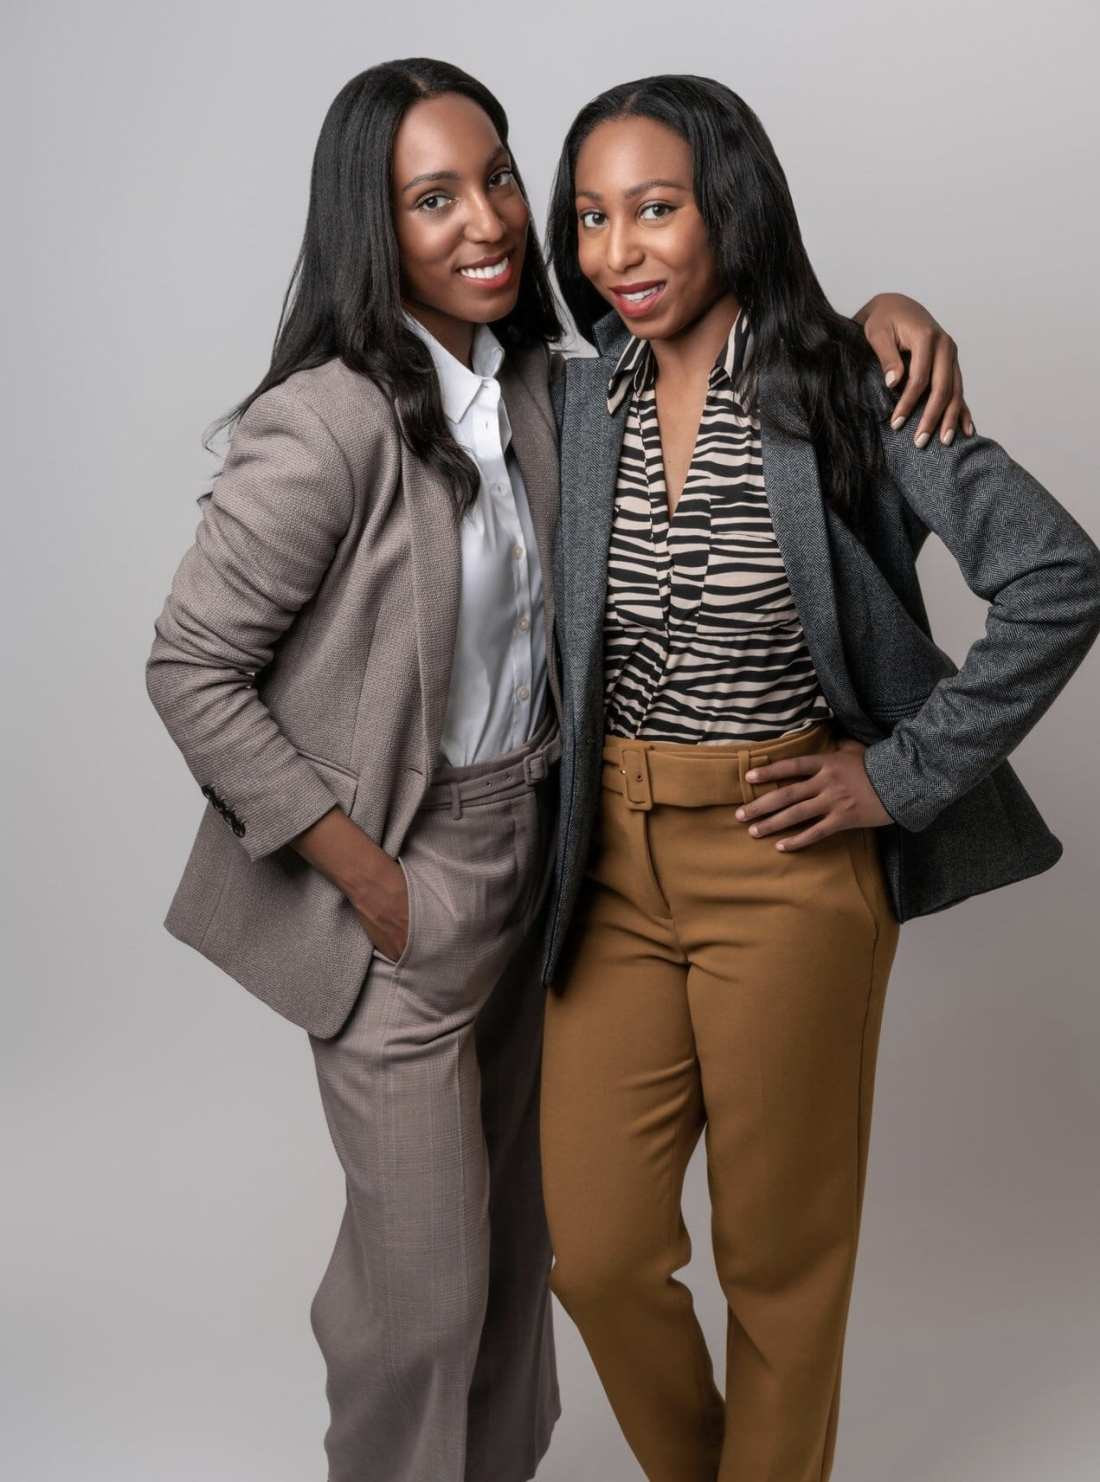 Jilene and Lana Jackson Co-Founders of The Storied Life wearing women' suits for Ann Taylor x The Storied Life We Are Better Together Campaign IMG3